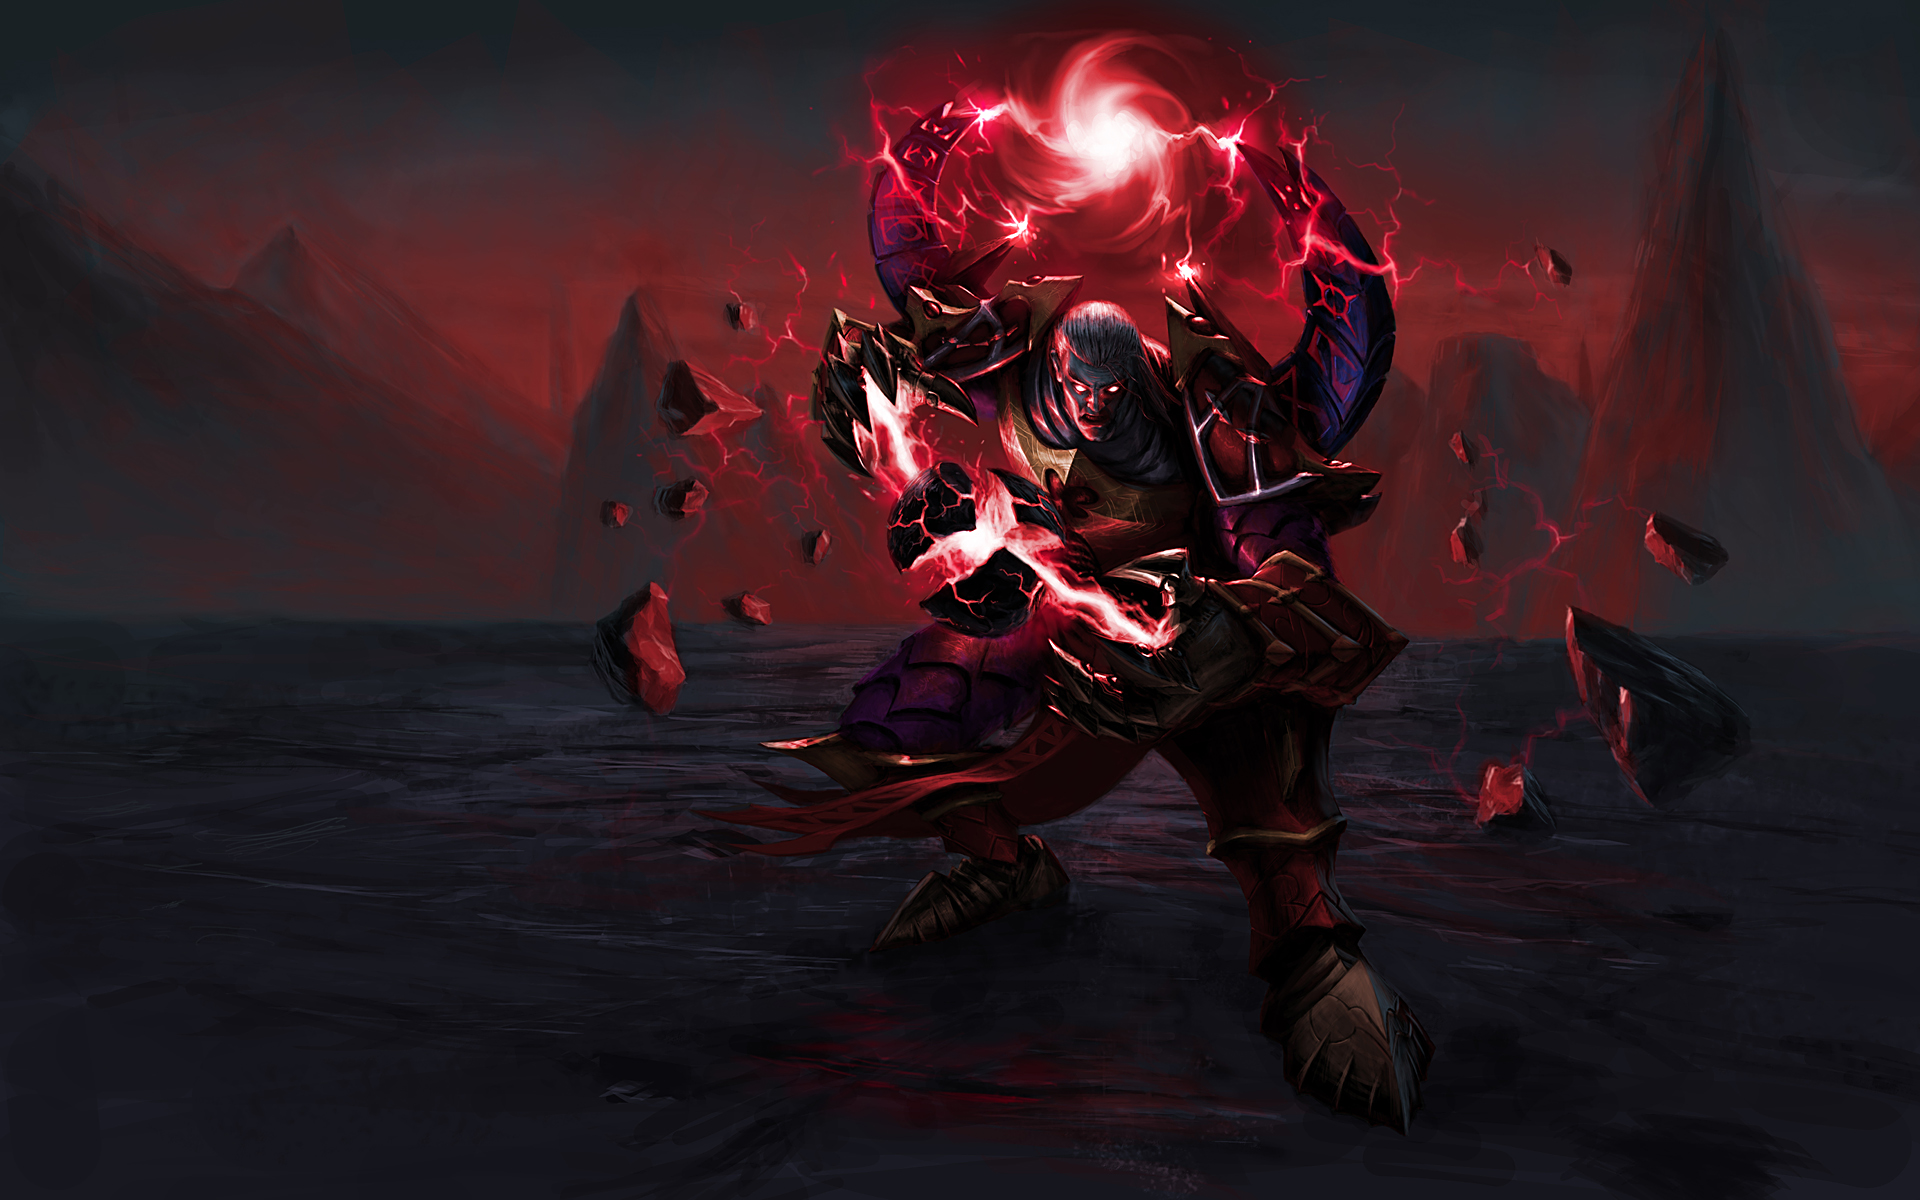 Heroes of Newerth Disciple by TorturerWraithSpy